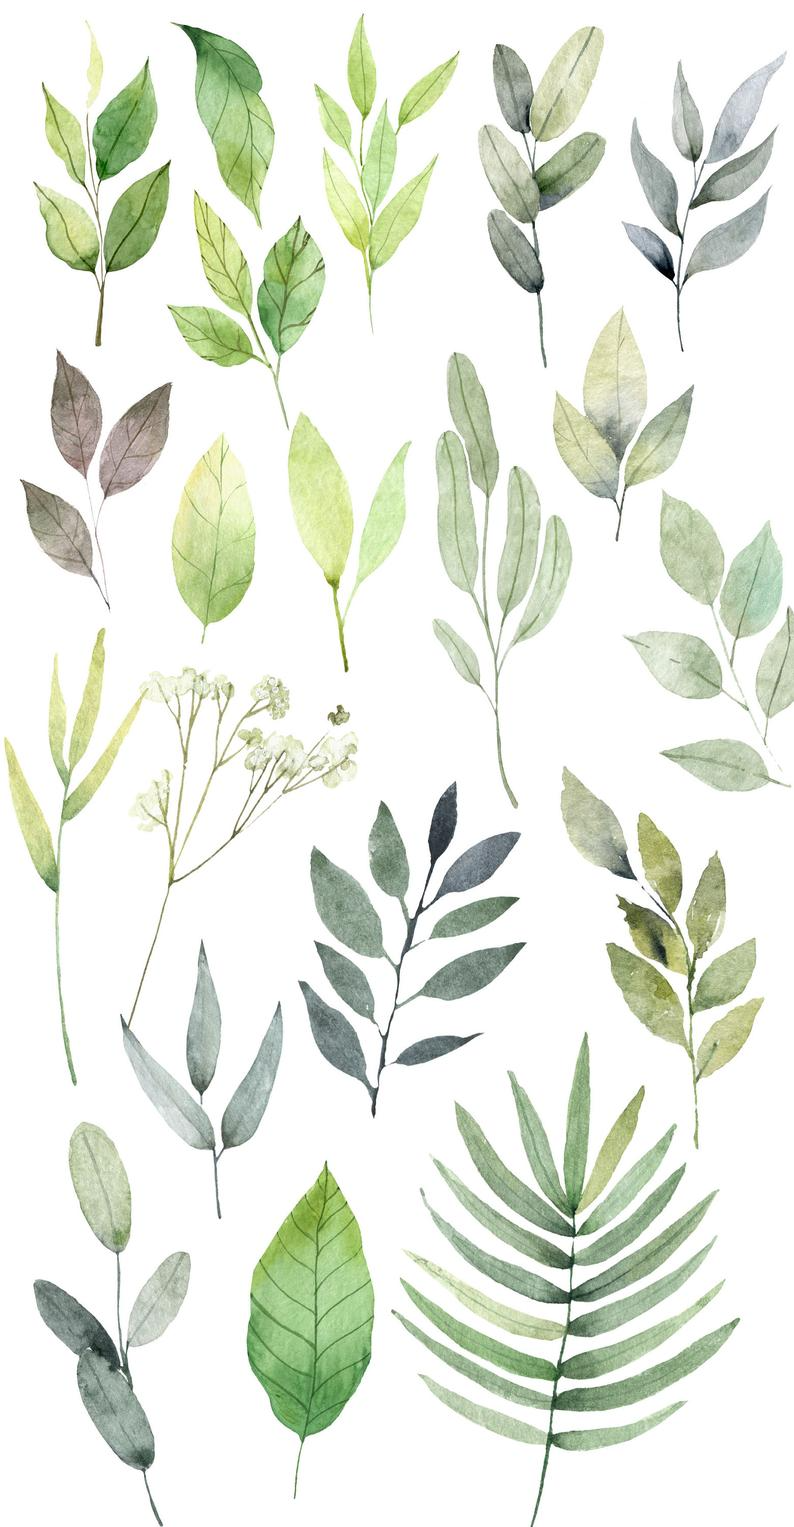 Watercolor Leaves Clipart Watercolor Floral Clip Art Hand Painted Greenery Png Floral Digital Plants Clip Art 86 In 2021 Leaf Clipart Floral Watercolor Watercolor Leaves